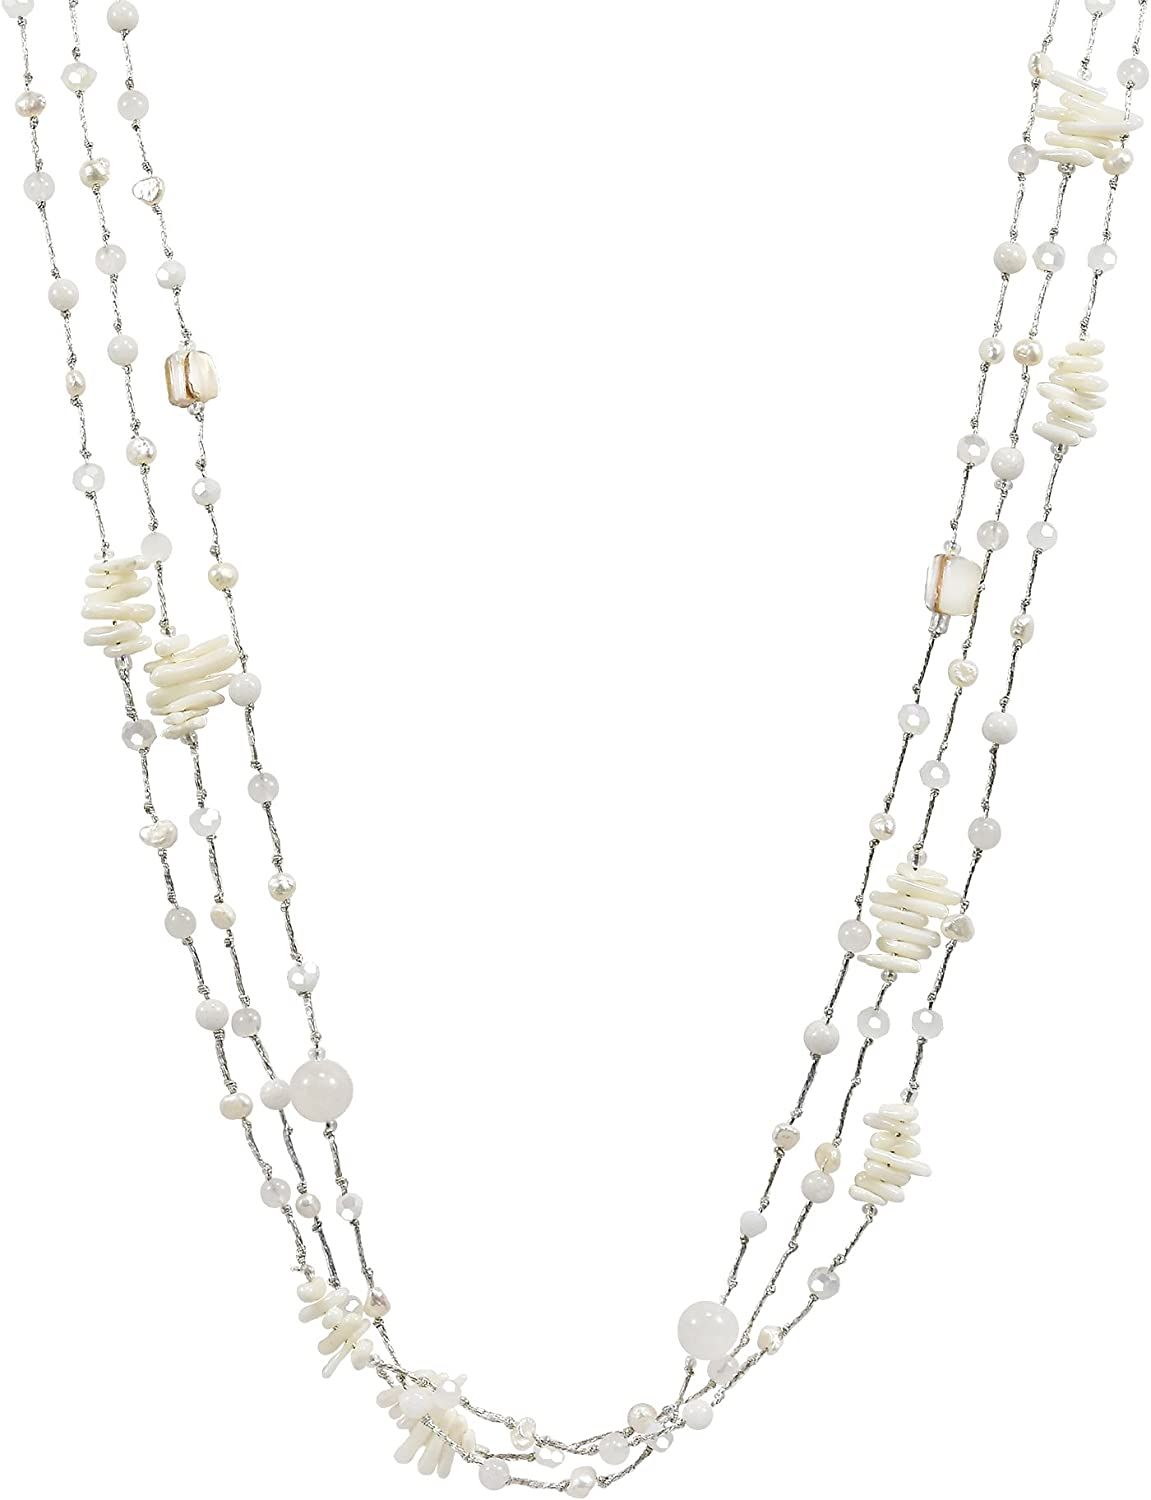 Ethereal Beauty Long Multi-Strand Necklace Stones Max 76% OFF Mixed Max 41% OFF White